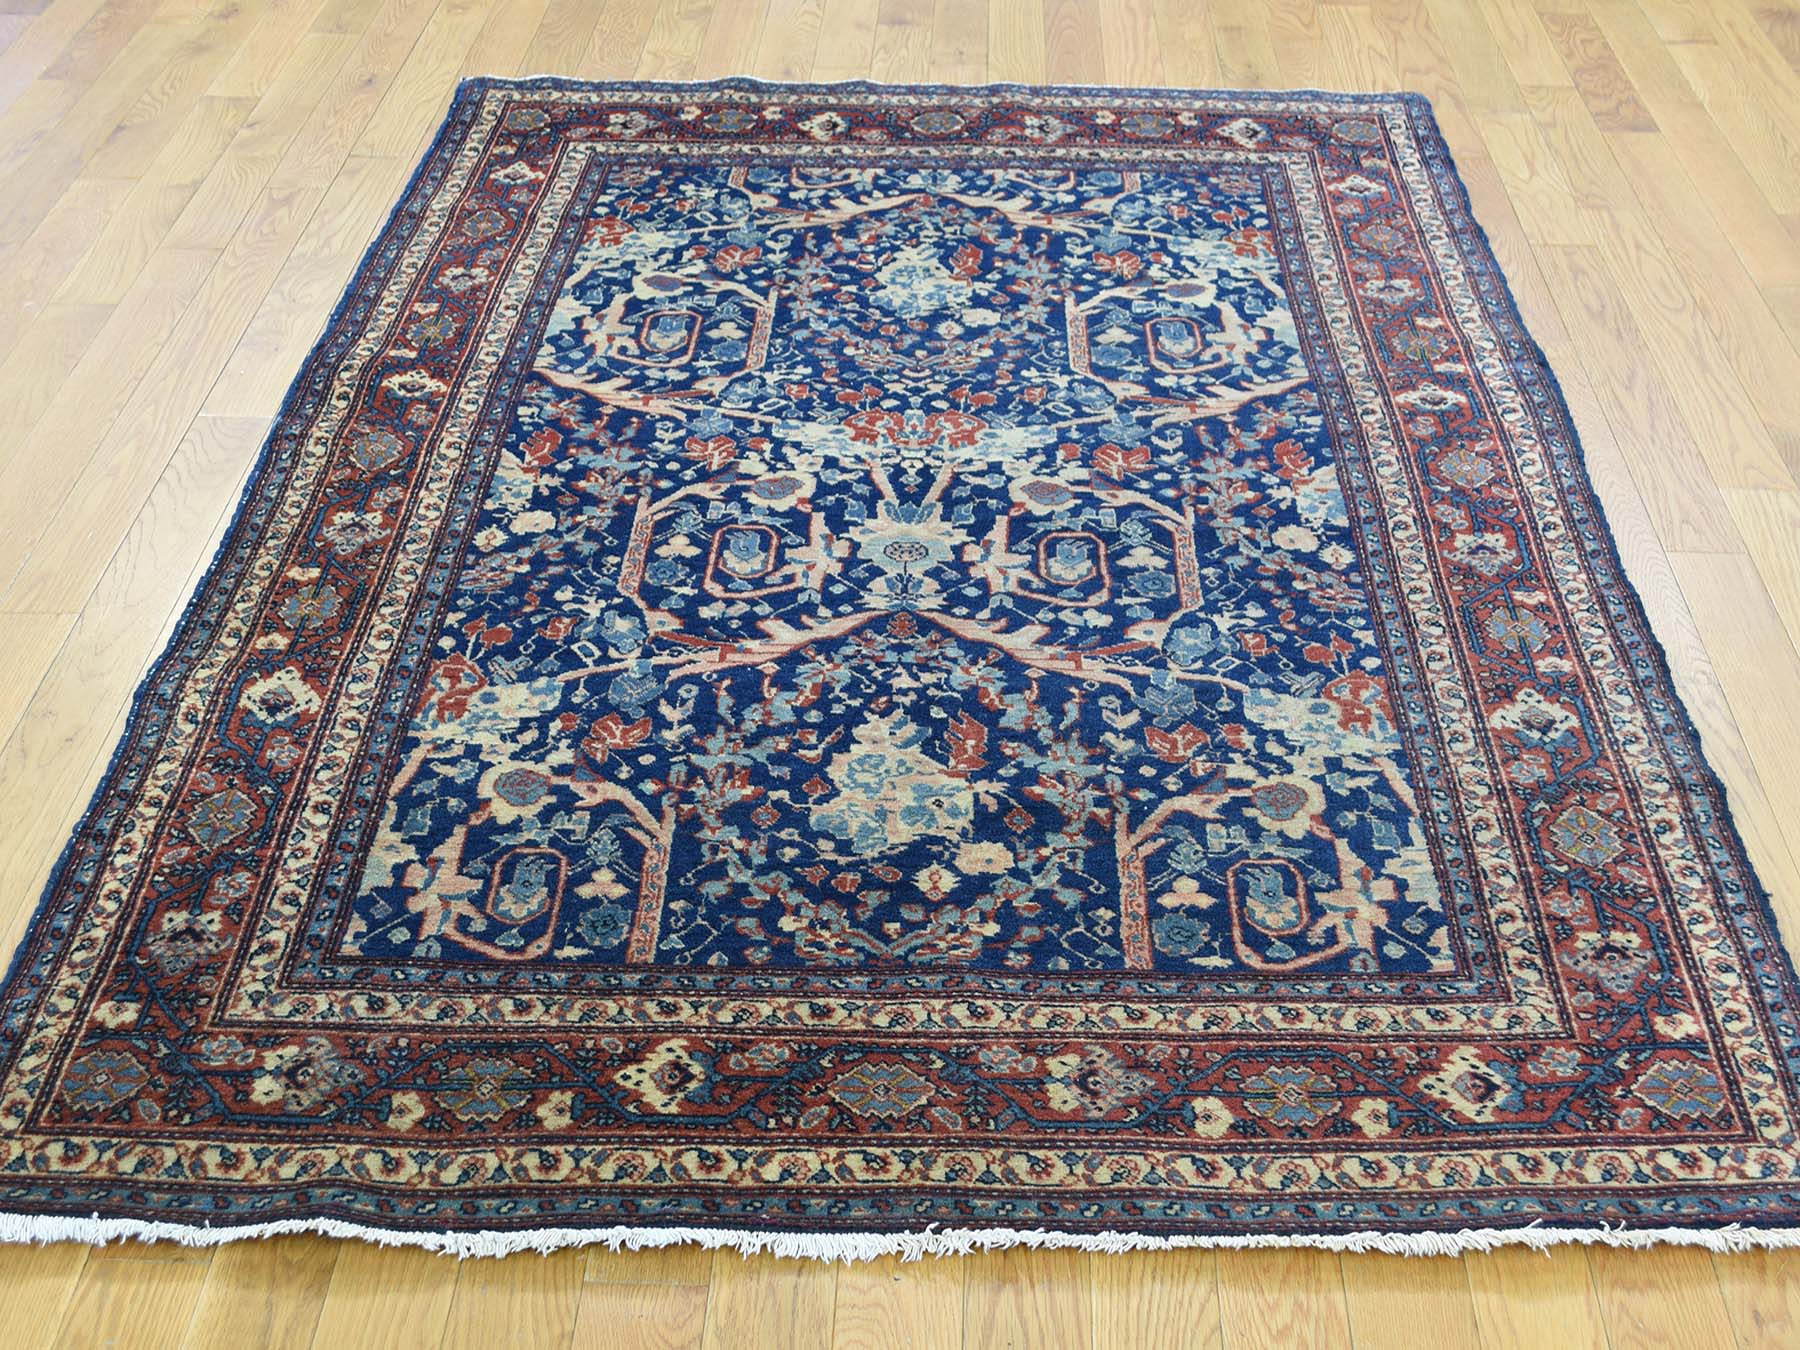 4 6 Quot X6 3 Quot Hand Knotted Antique Persian Tabriz Navy Blue